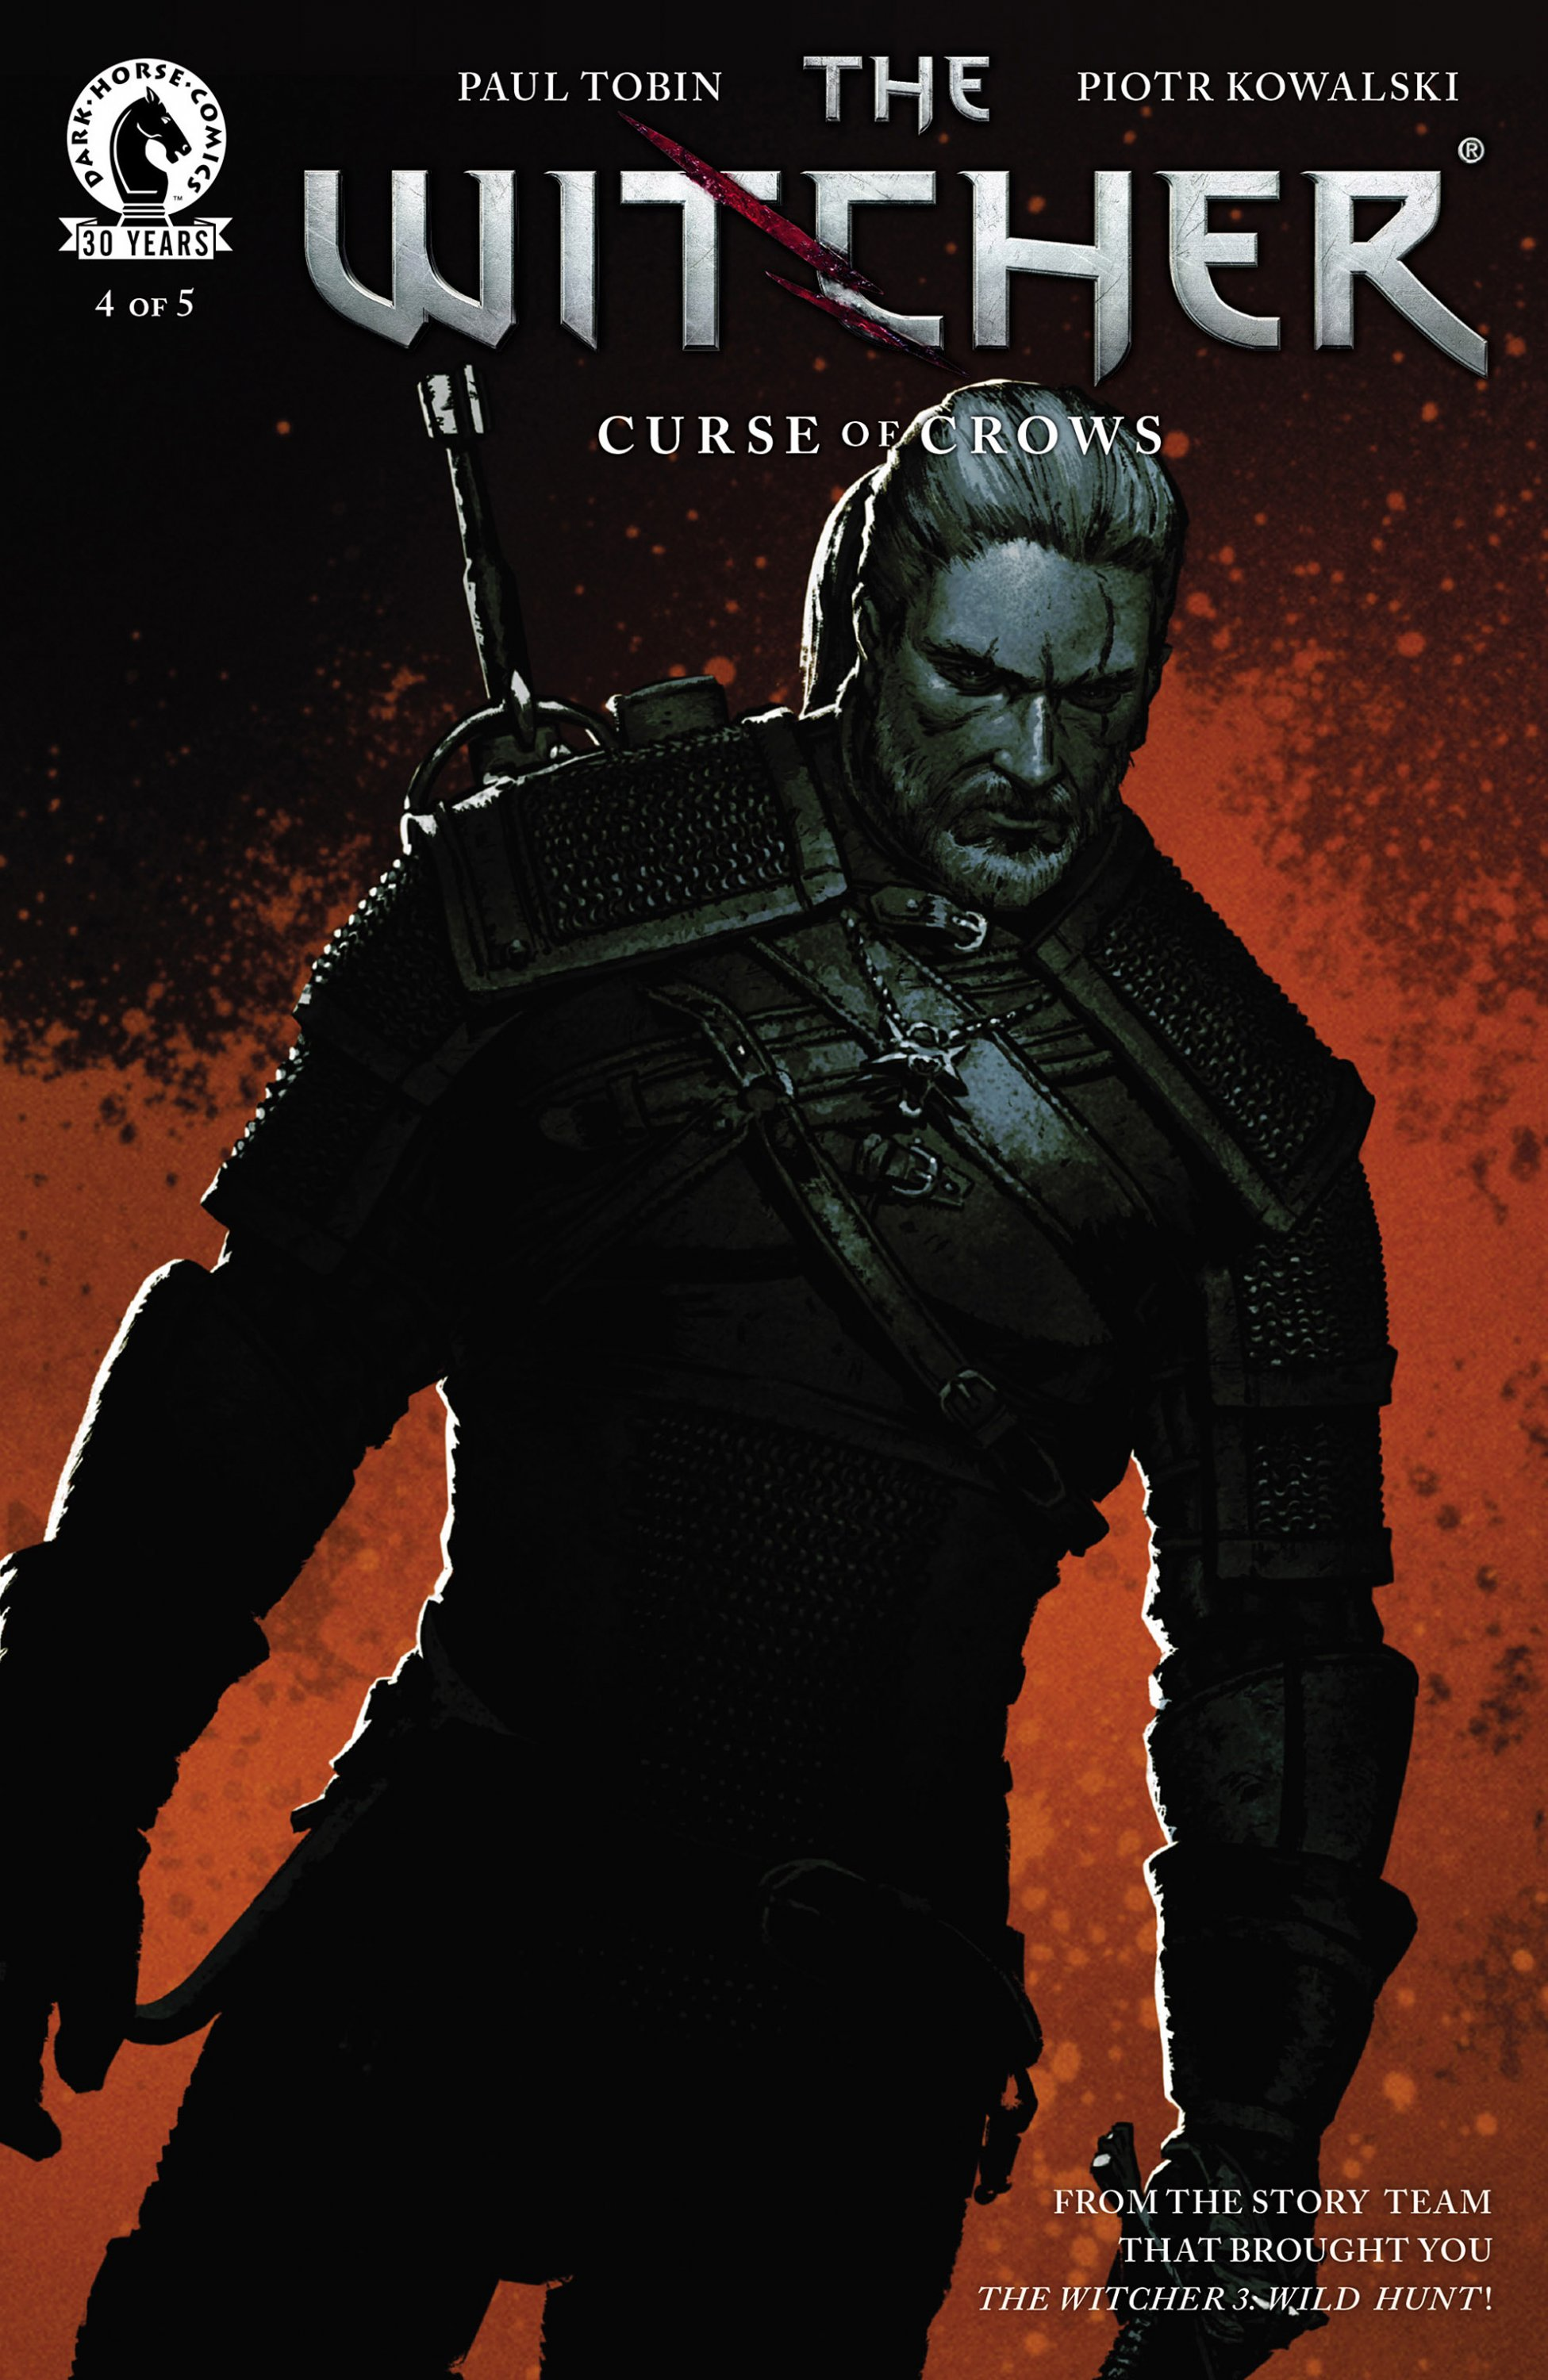 The Witcher - Curse of Crows 004 (December 2016)